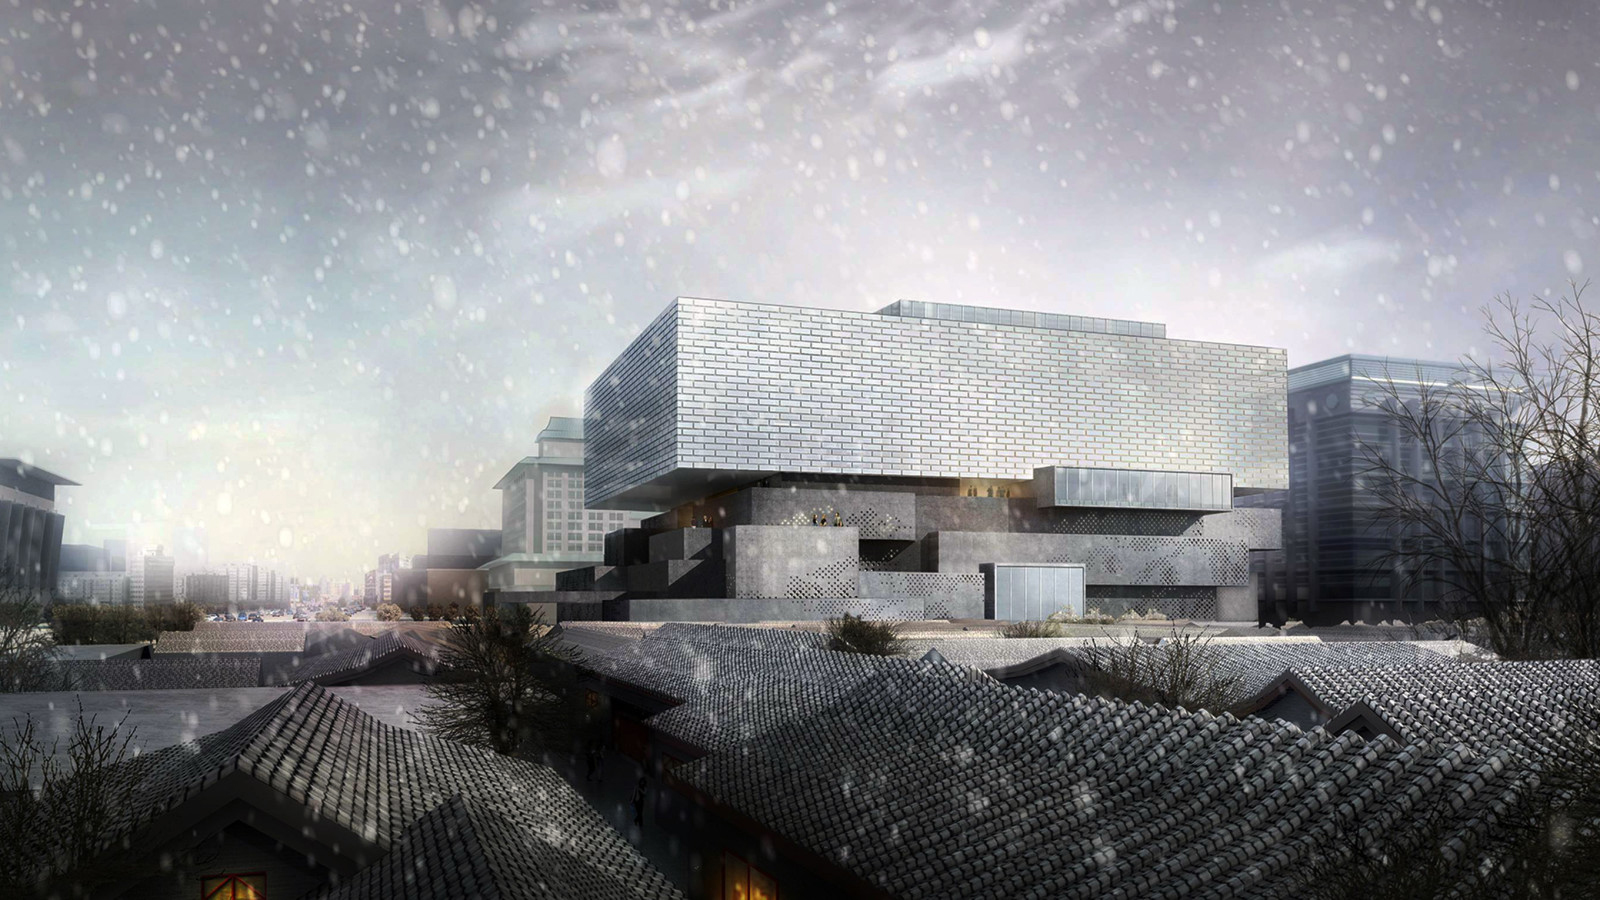 10 new museums opening in 2018: Guardian Art Center by Buro Ole Scheeren